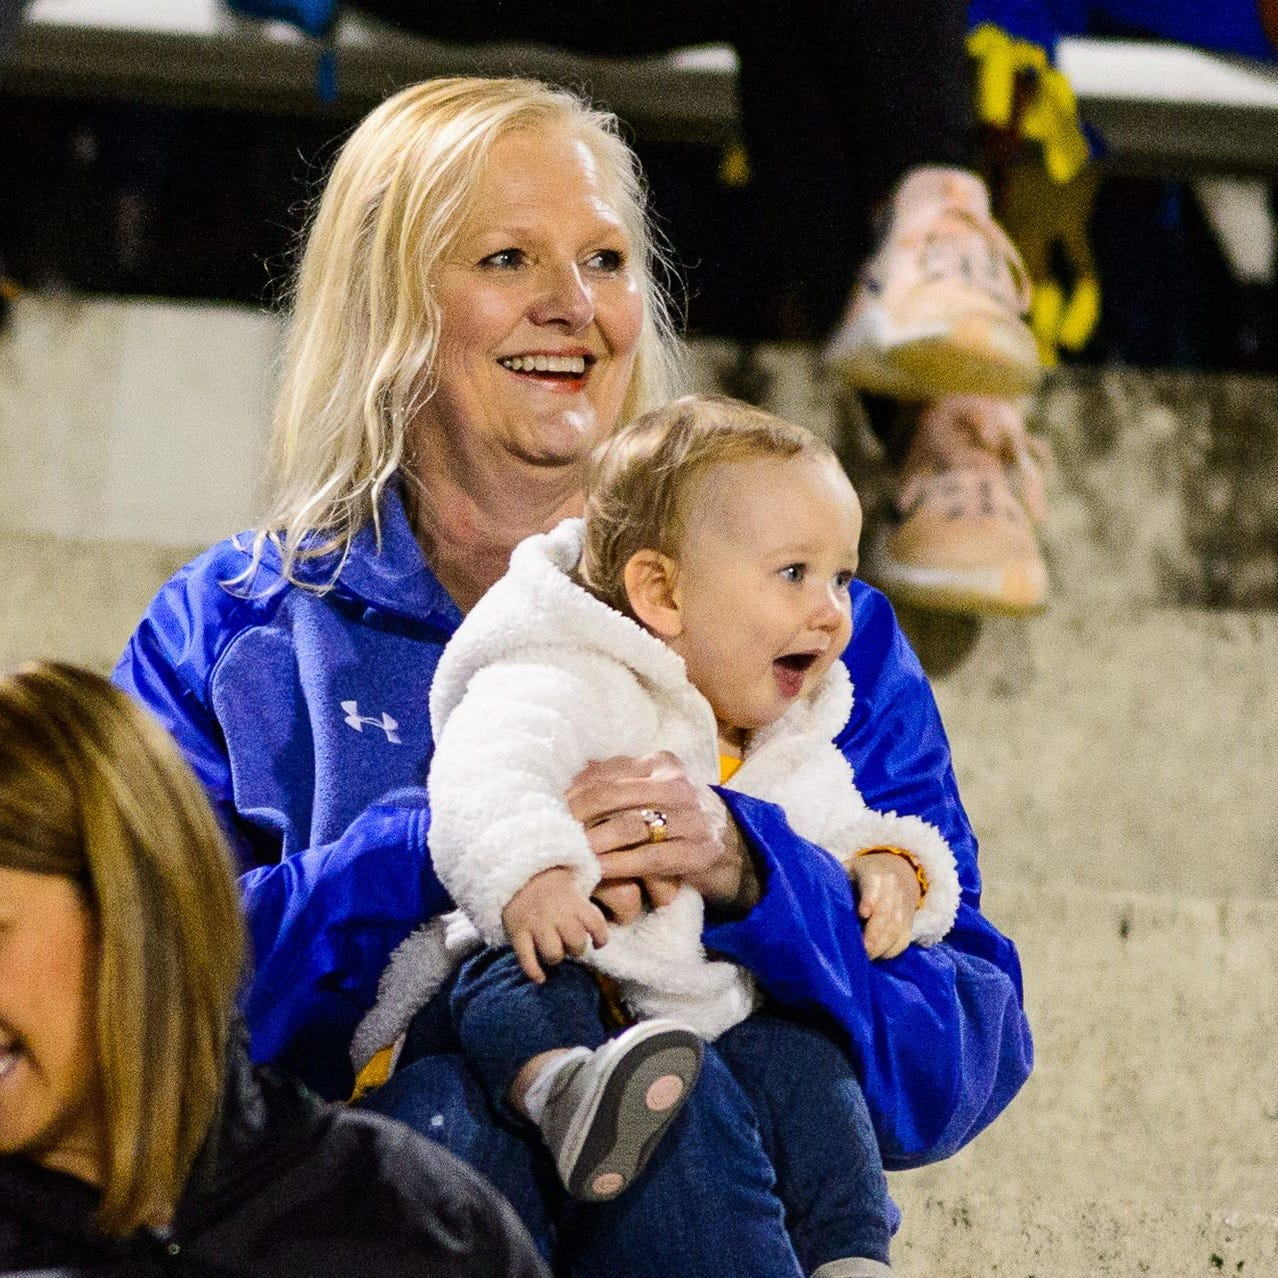 Lynn Tate, wife of Wren High School football coach Jeff Tate, enjoys the experience as she watches Wren's Class AAAA first-round playoff game against Greenville with their granddaughter, Sawyer.